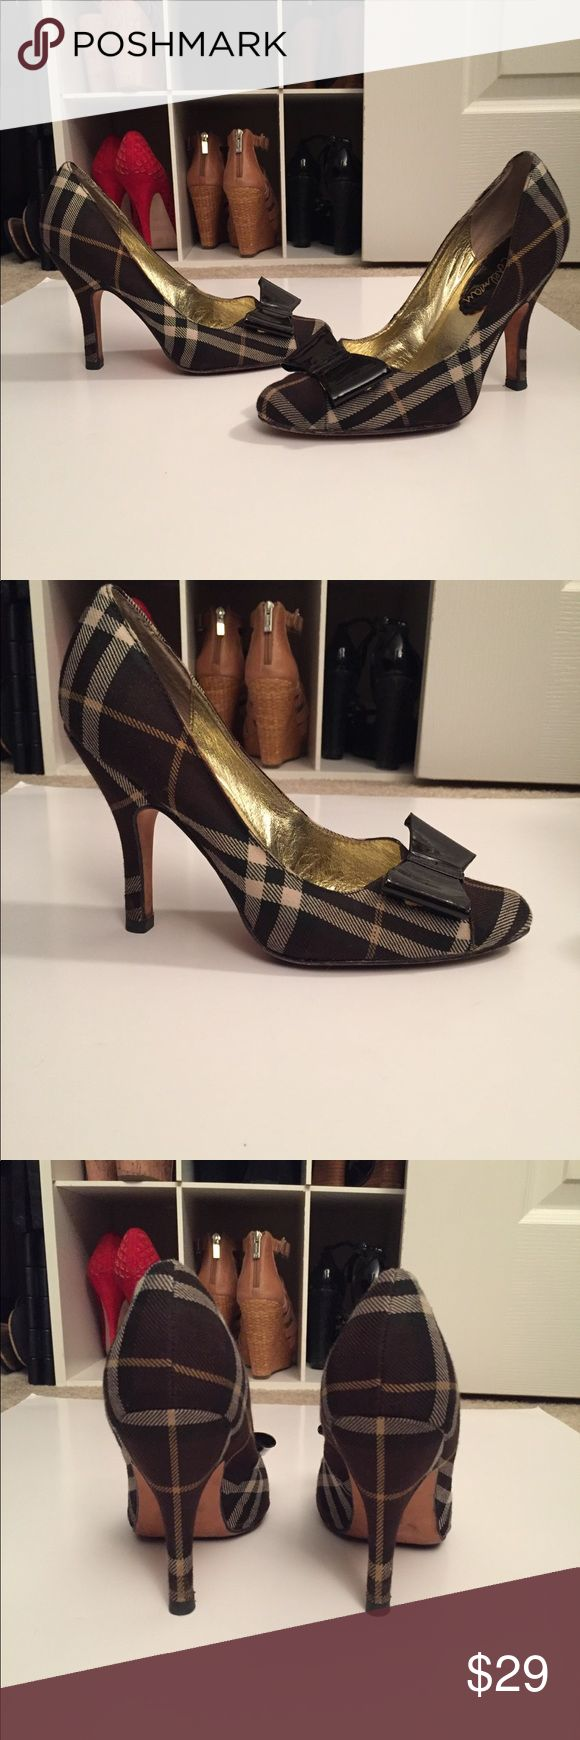 Sam Edelman plaid Patent bow heels black 7 These heels are so adorable! I am so in love with them and don't want to part but sadly they are just a tad too small. Used several times but brand new heel taps were recently added (that alone cost $15) I hope you grab these beauties!!! :) Sam Edelman Shoes Heels